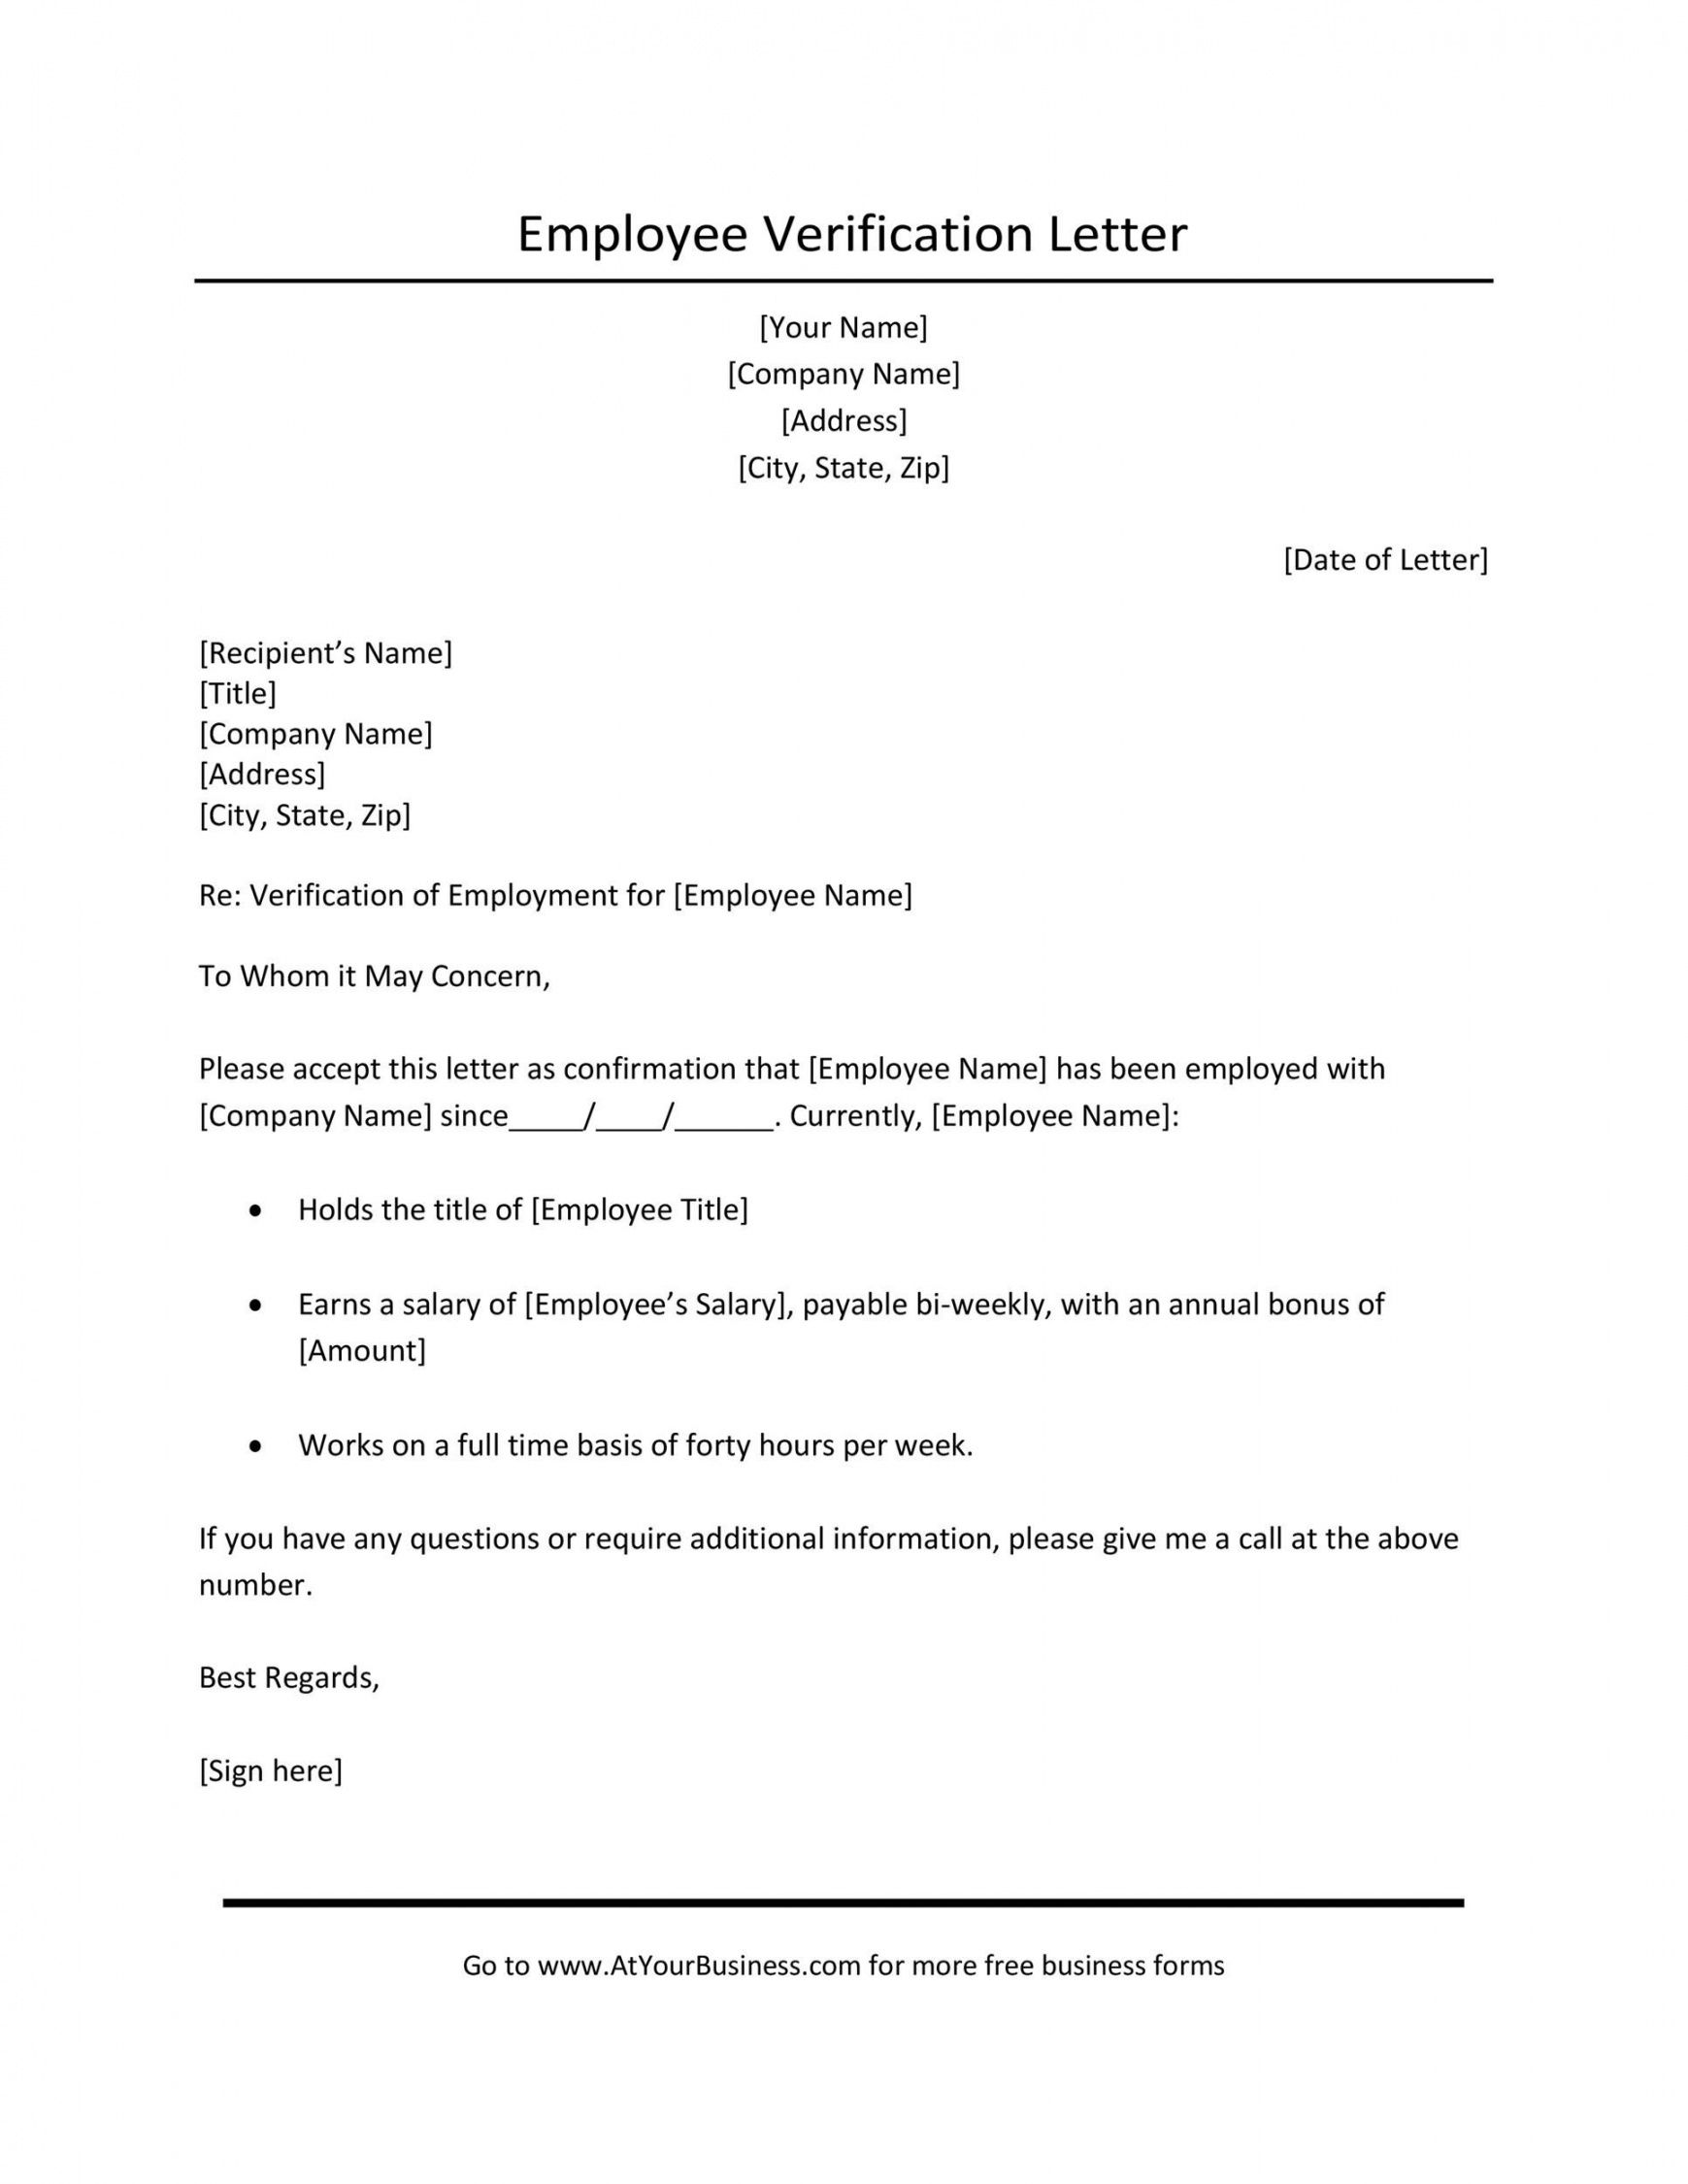 free employment verification letter for independent contractor excel sample